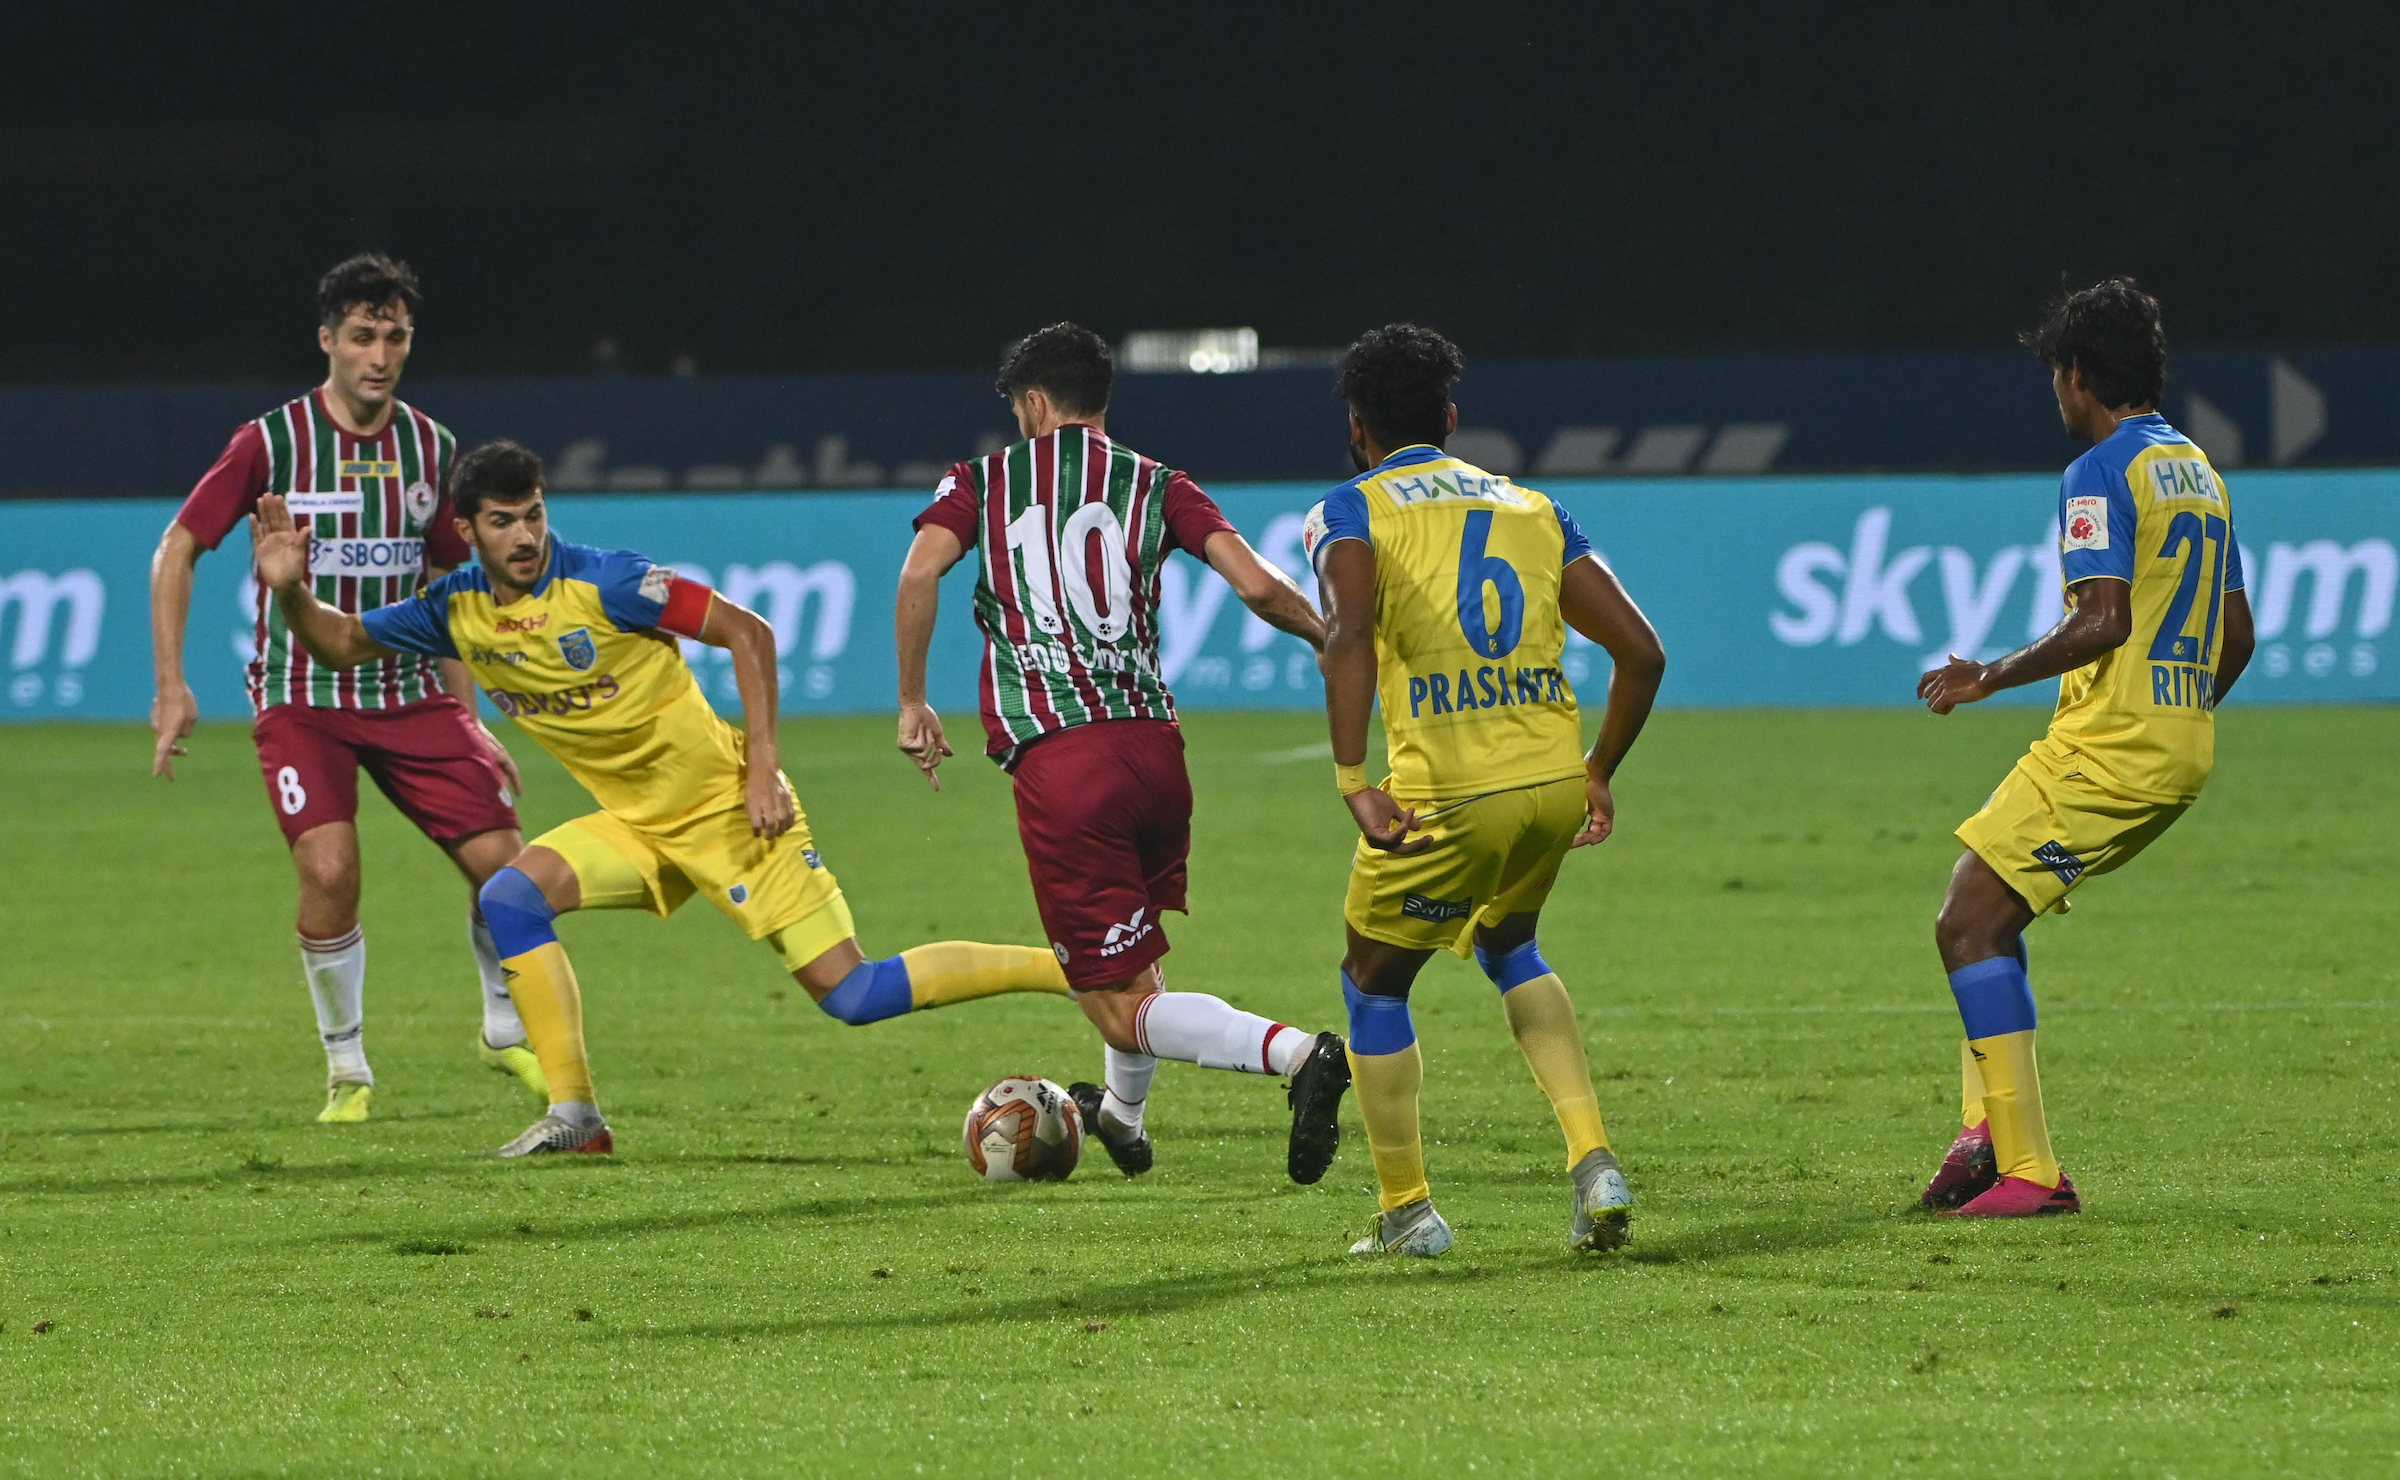 ATK Mohun Bagan's Antonio Habas: To win against East Bengal is my obsession